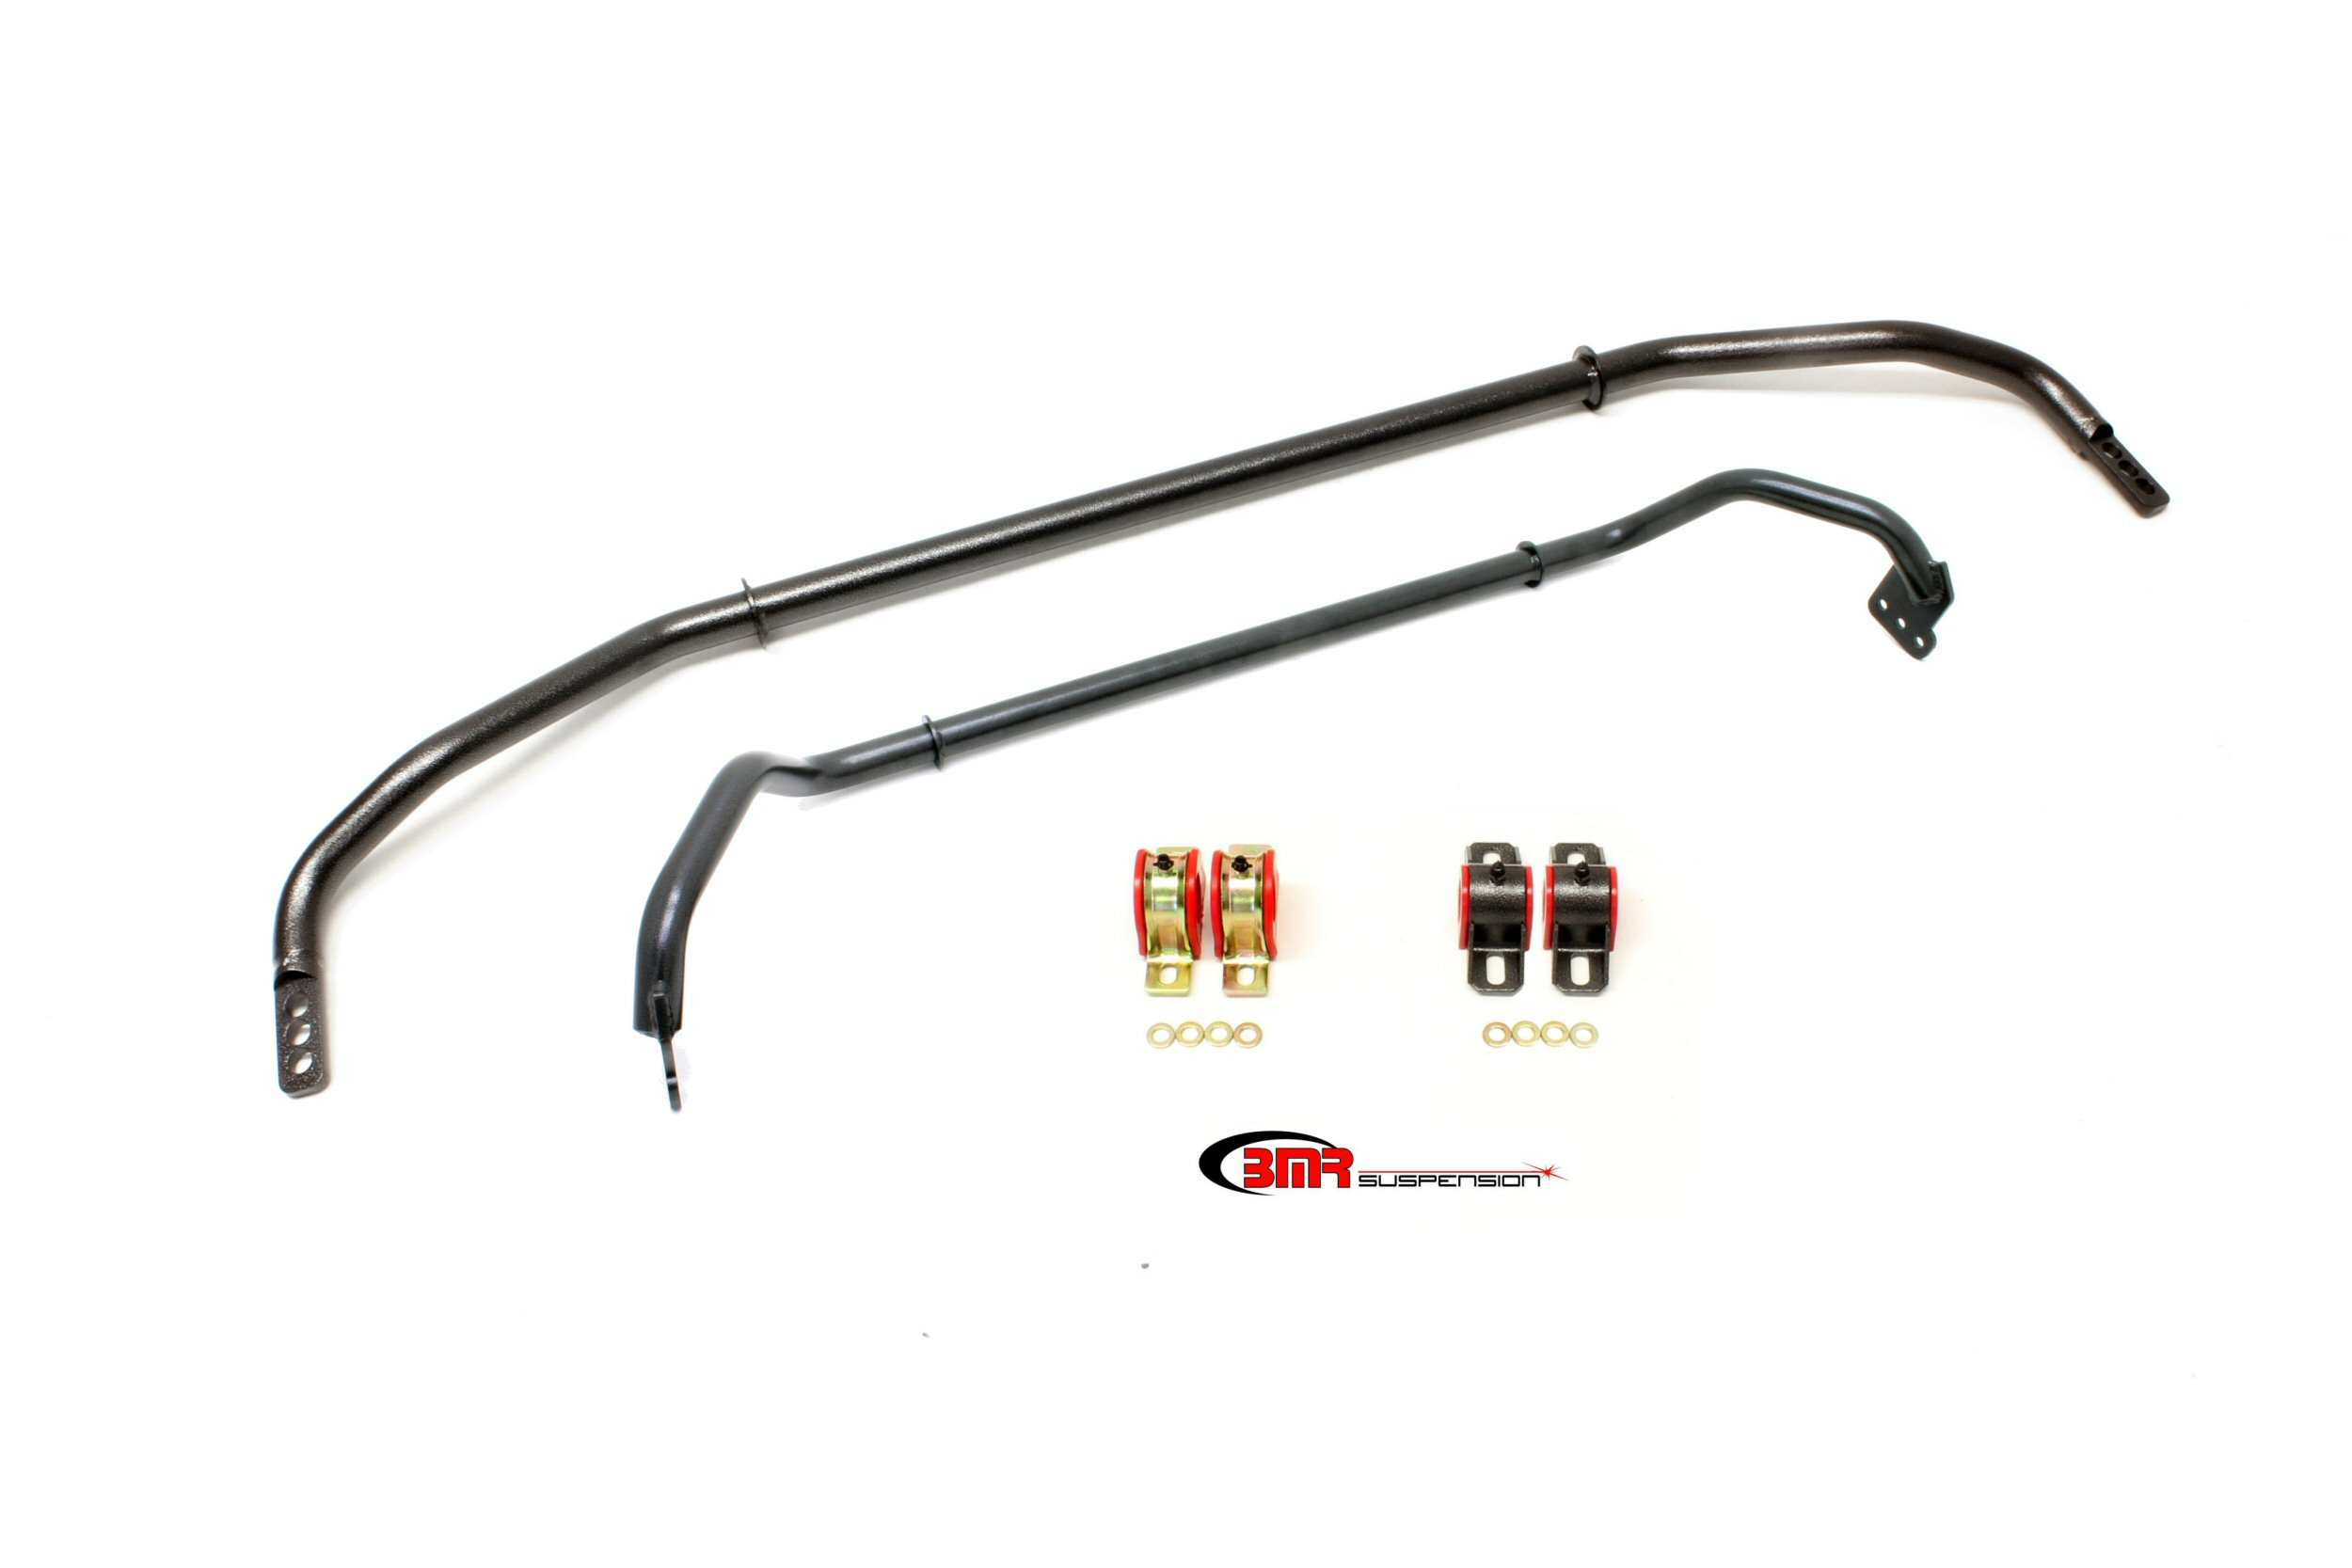 Bmr Suspension Sb037 Sway Bar Kit With Bushings Front